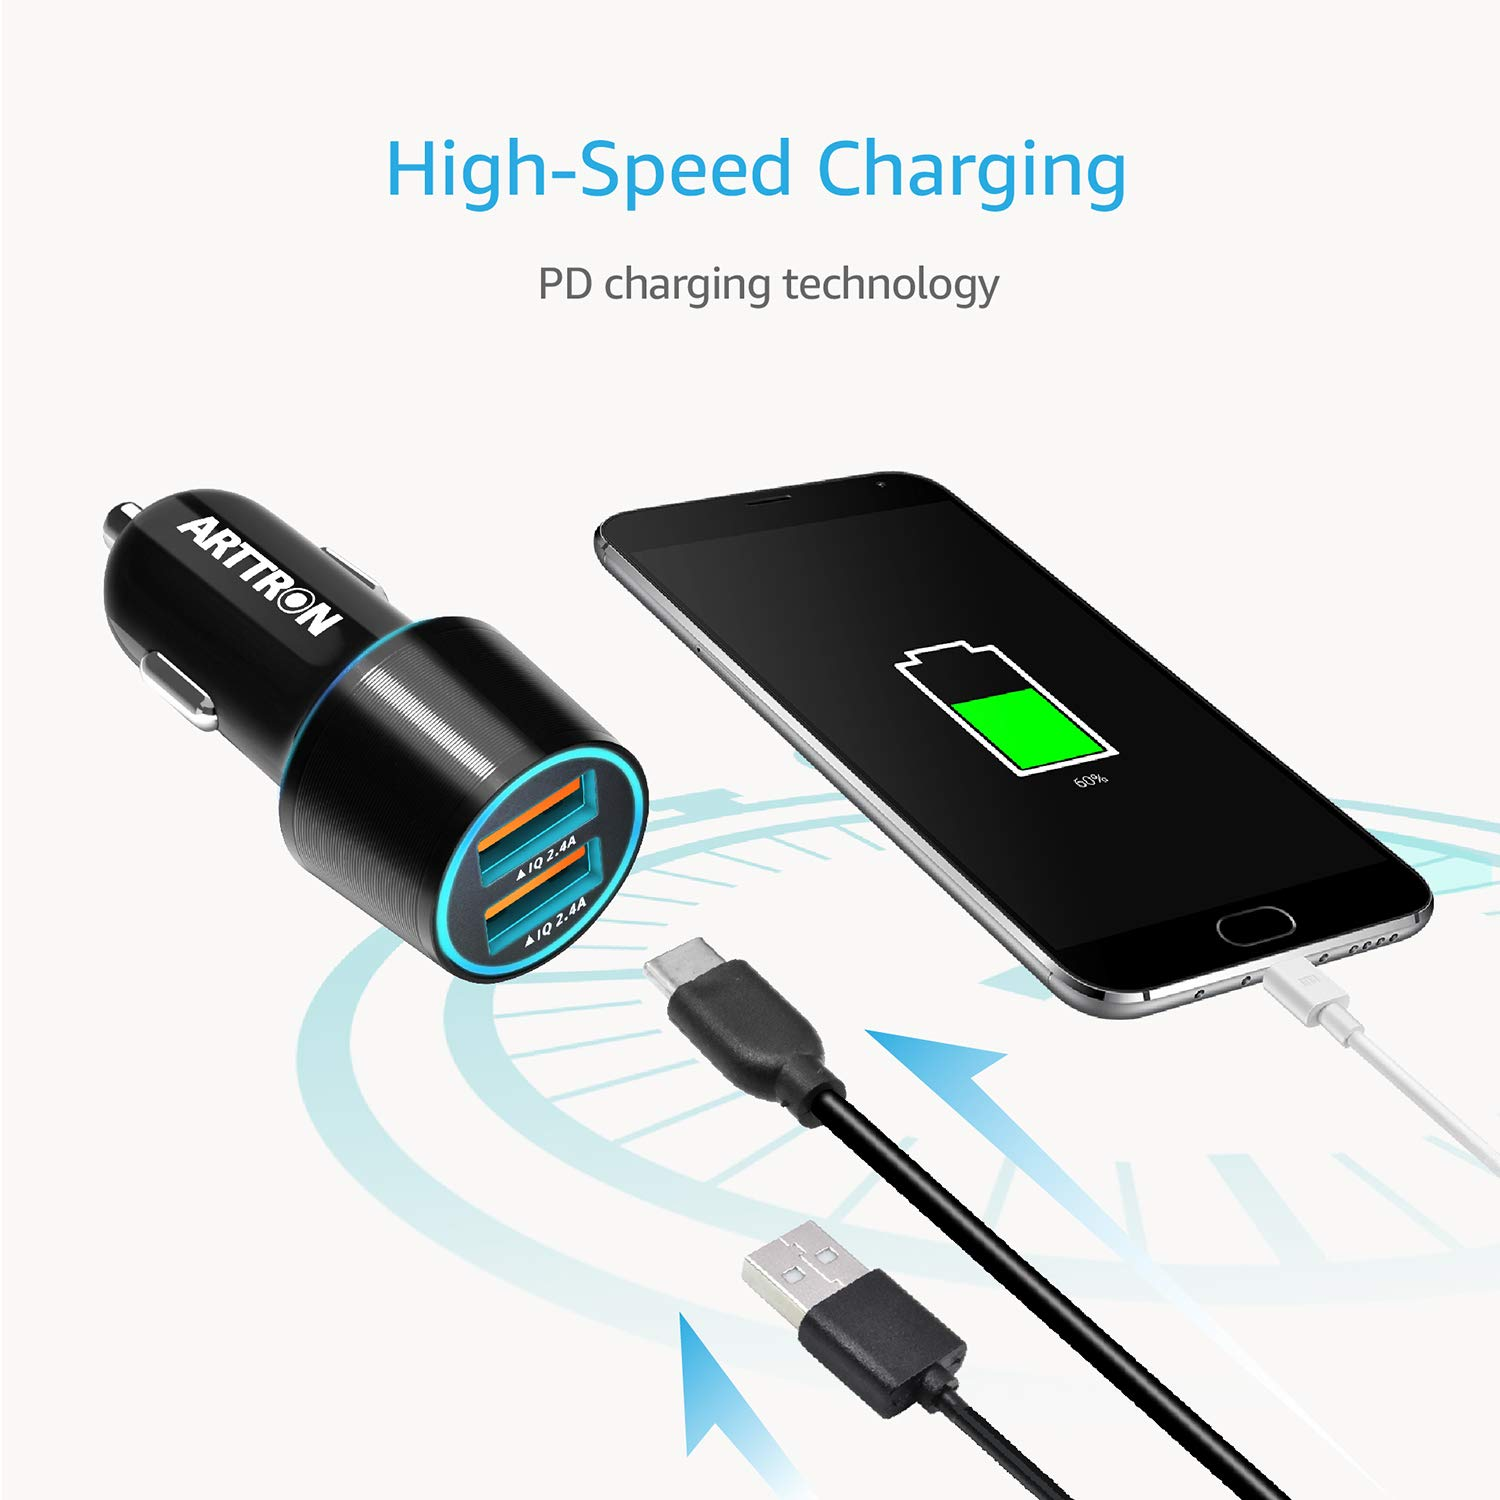 Cell Phone Car Chargers. Flush Mount Car Charge Adapter Dual USB Port for Apple Android Device 24w USB car Charger